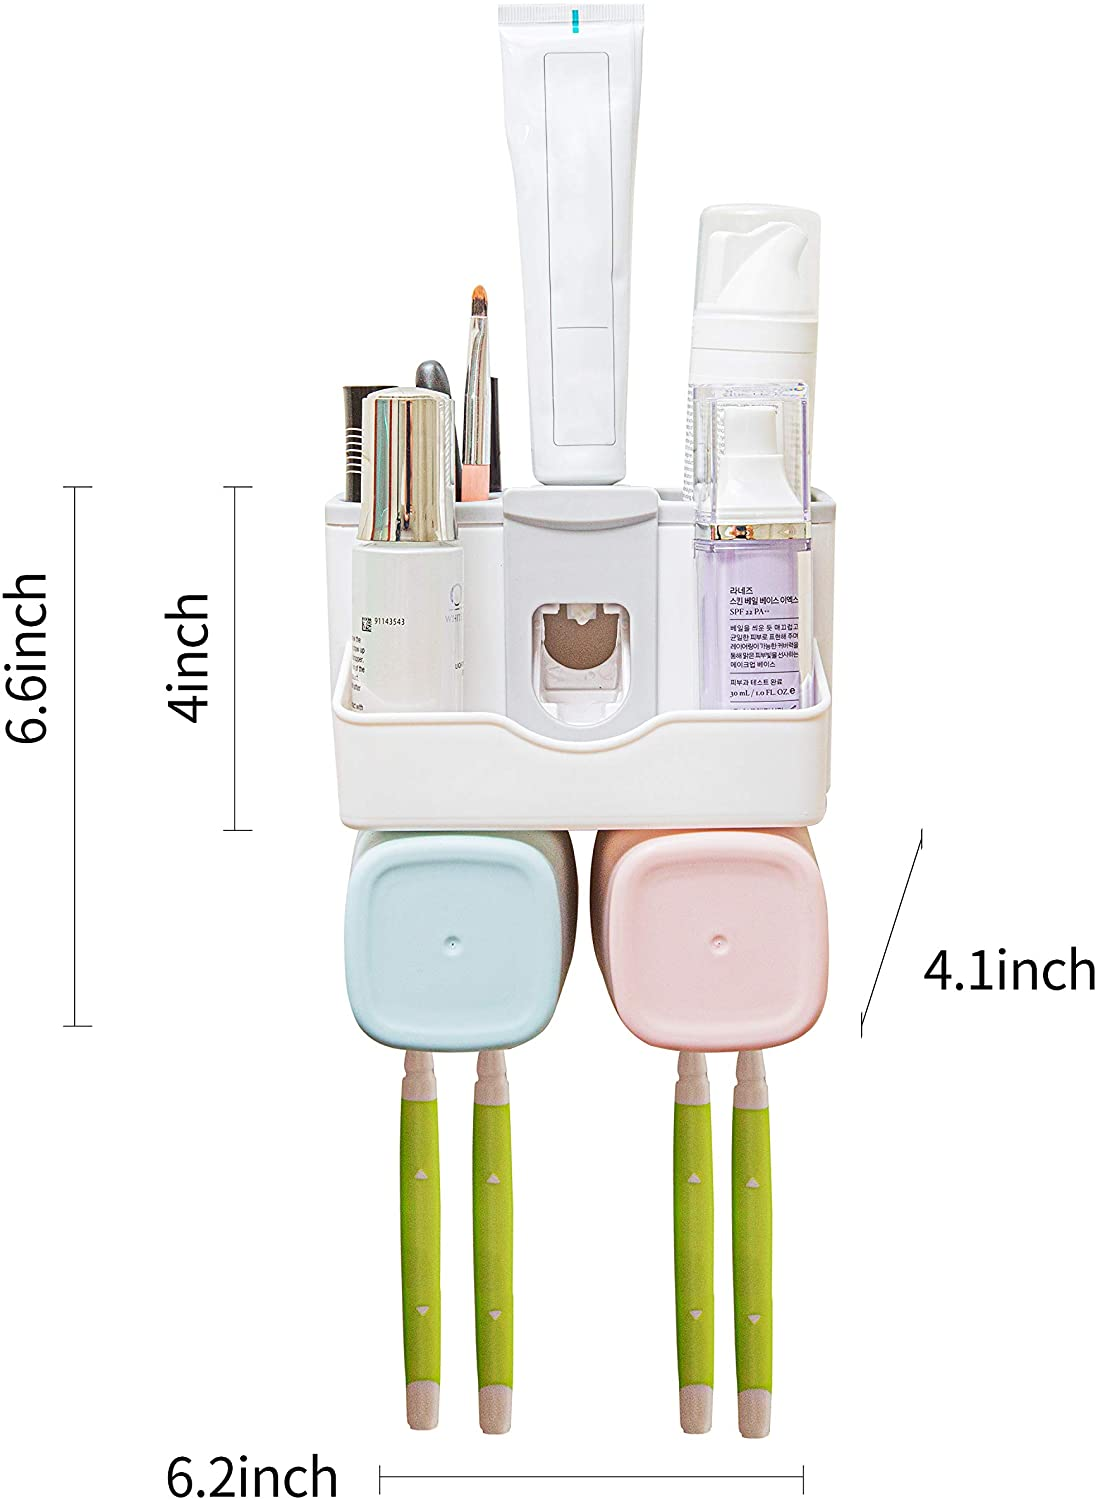 LAZYCOTTAGE Toothbrush Holder Multifunctional Wall-Mounted Space-Saving Toothbrush and Toothpaste Squeezer kit for a Family of Two